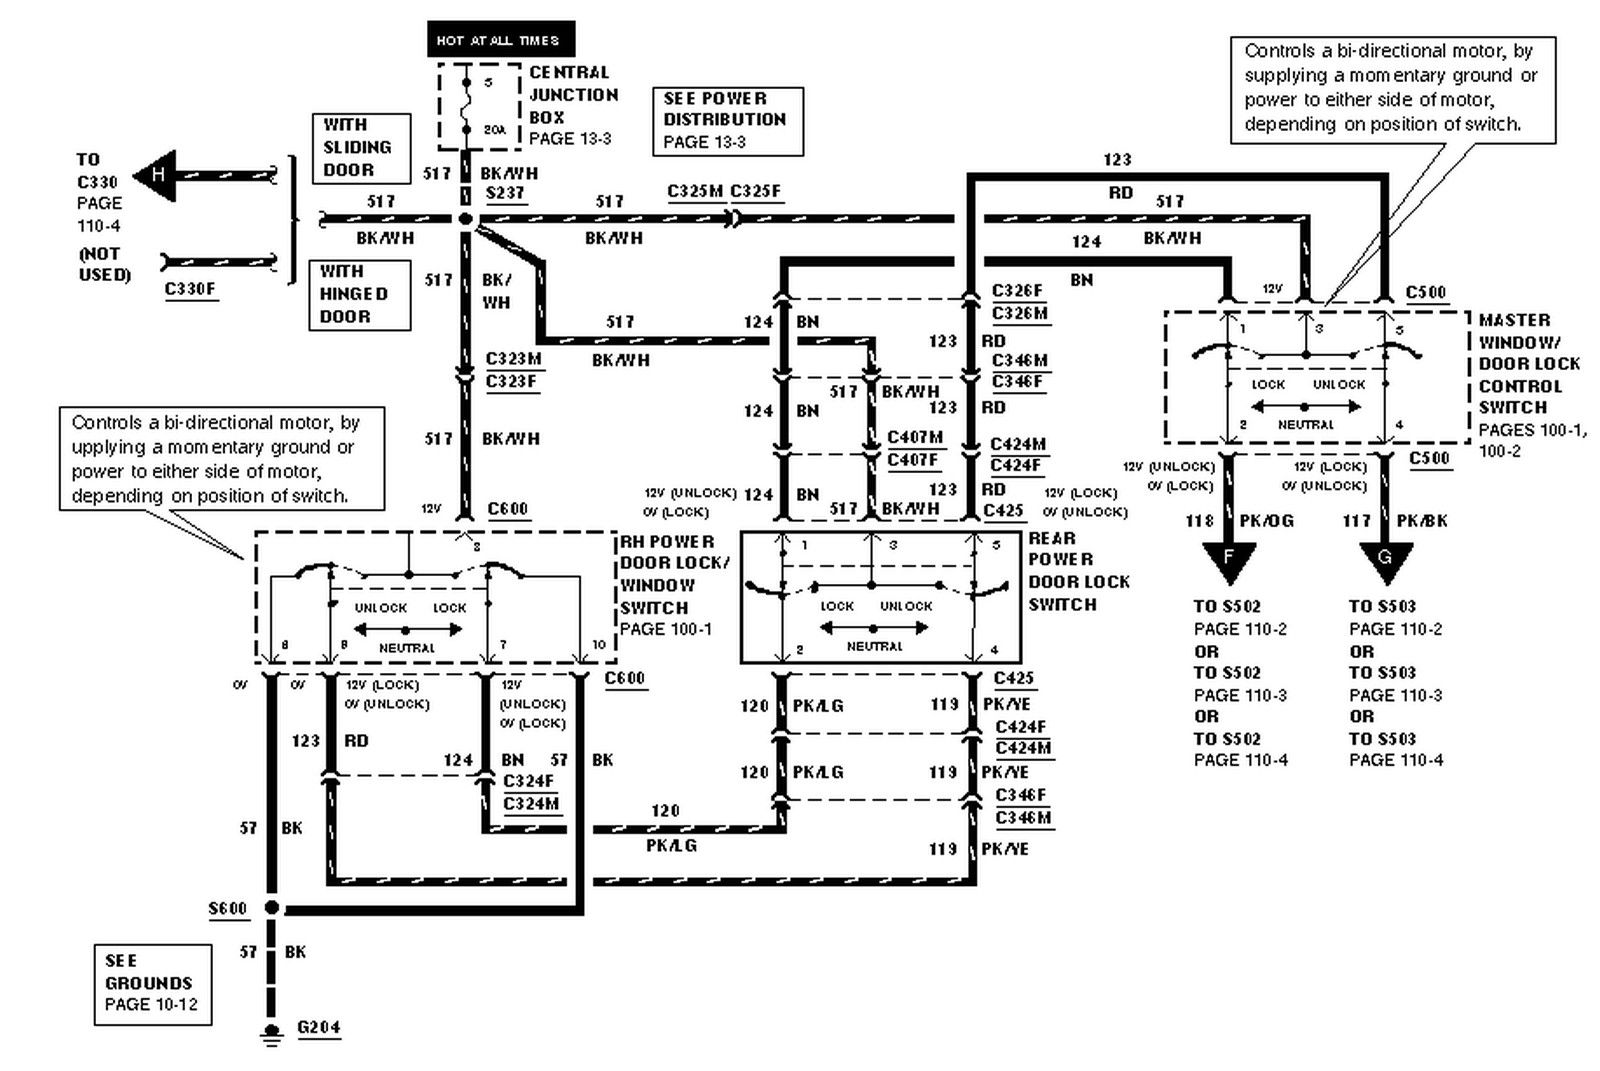 99 f350 fuse diagram piranha dual battery isolator wiring 1999 f250 door lock autos post